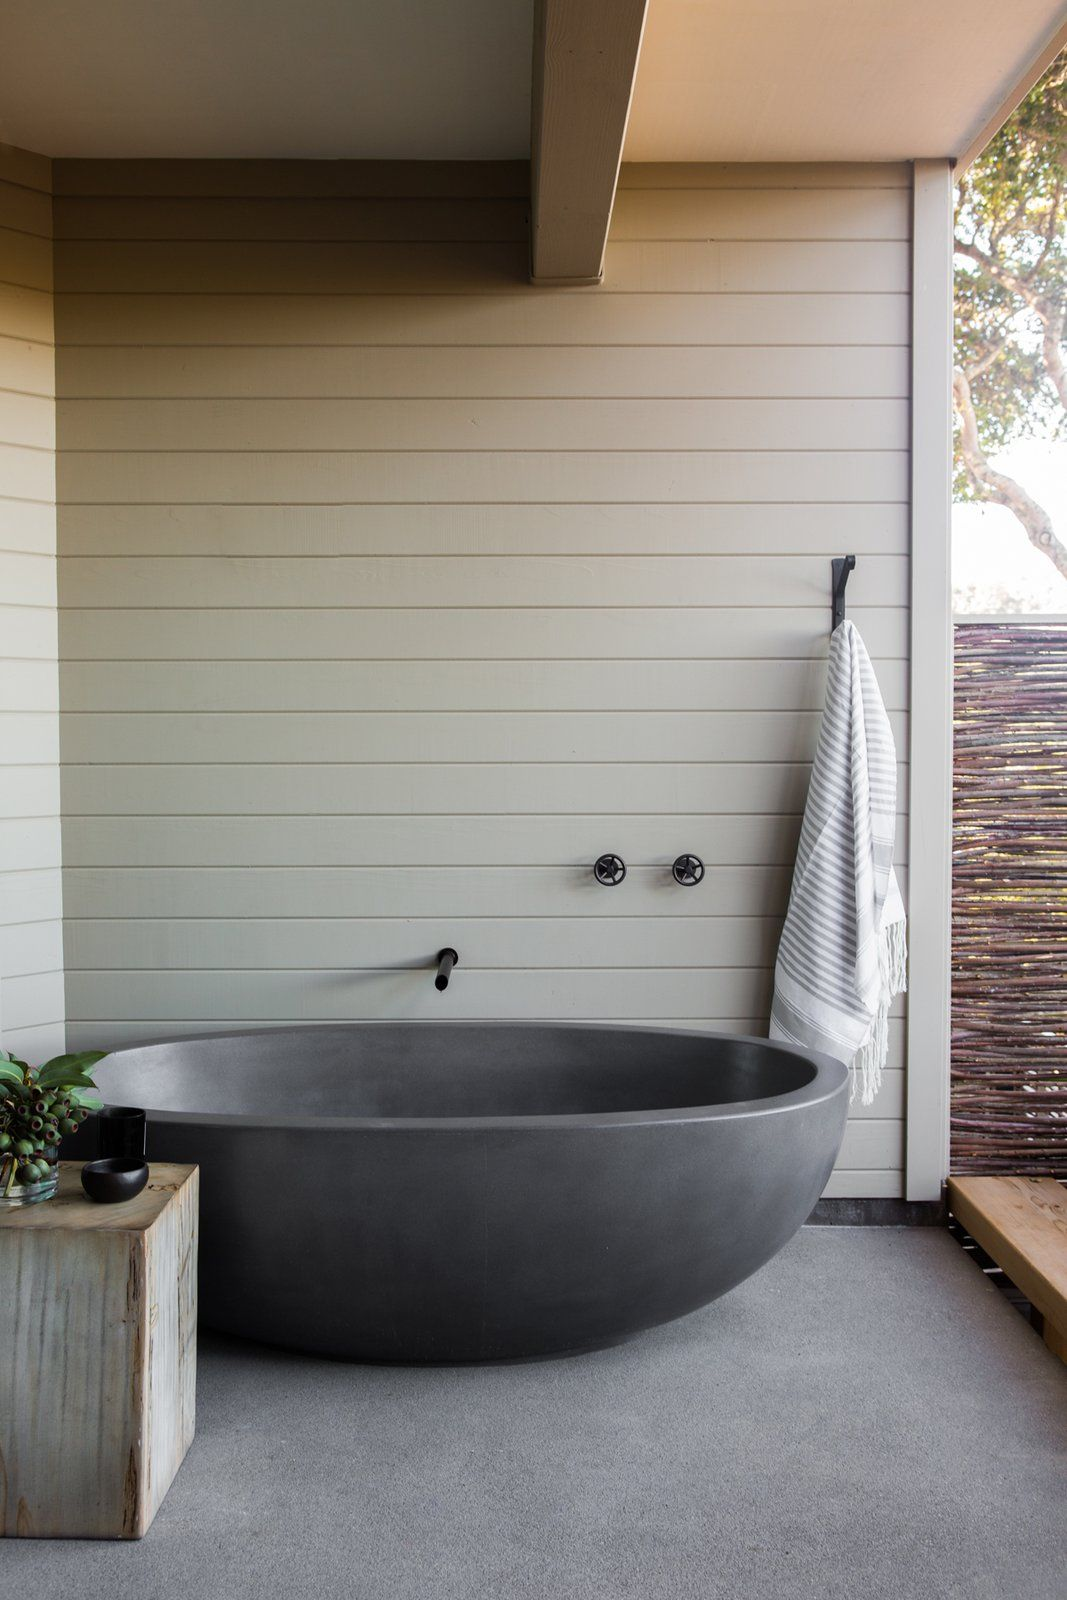 40 Modern Bathtubs That Soak In the View | Stylish Living ...